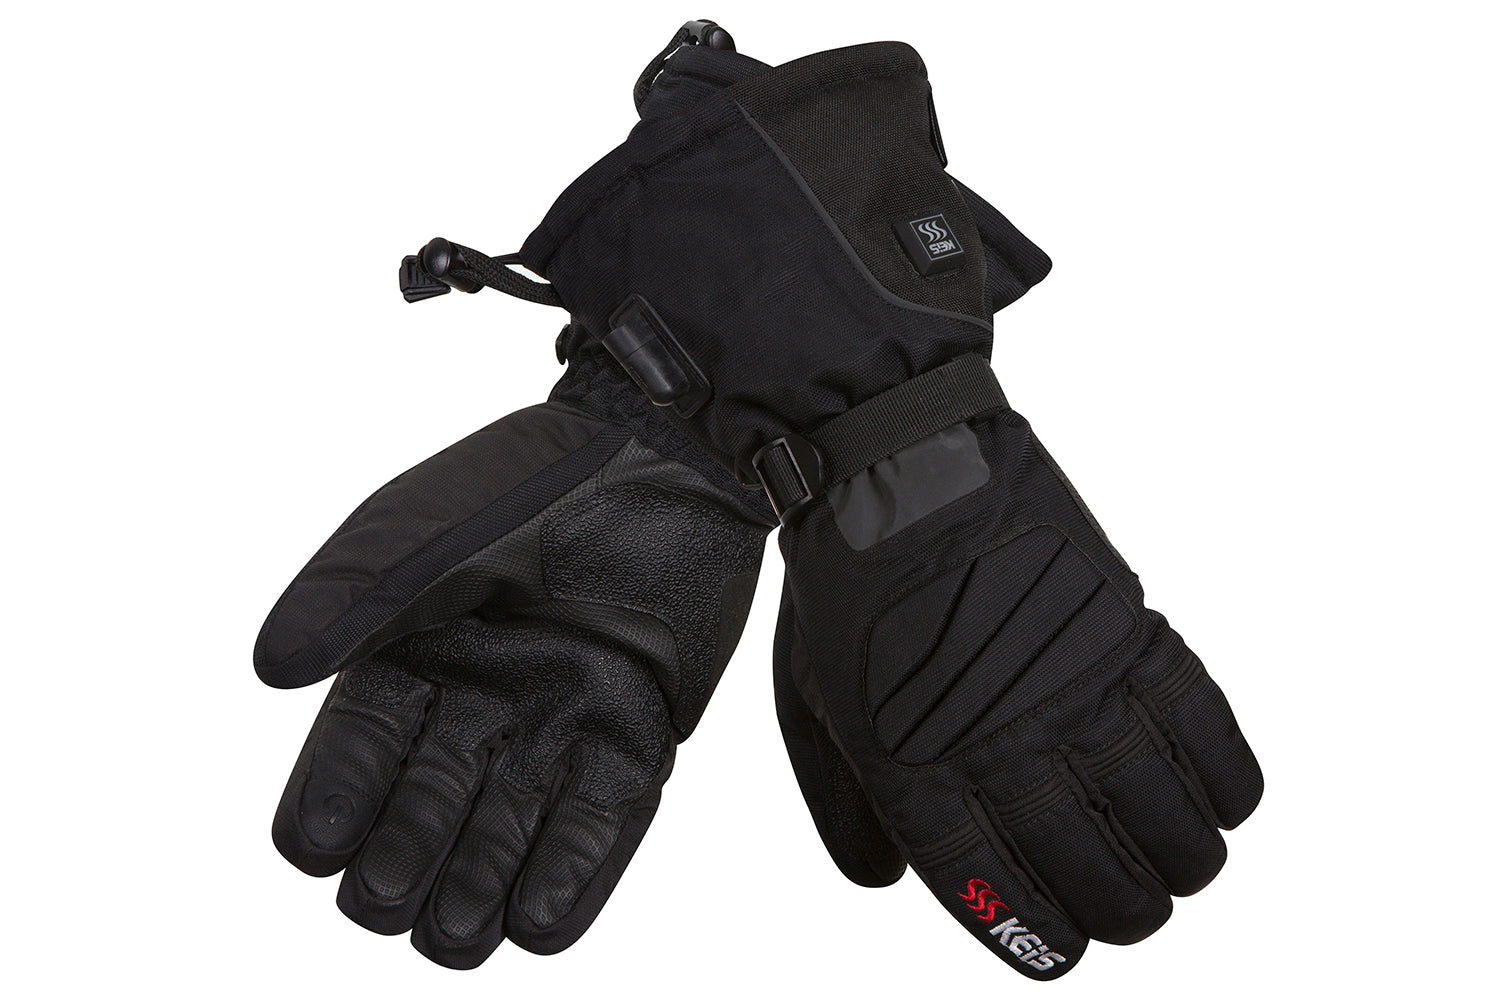 heated gloves for outdoor winter activities